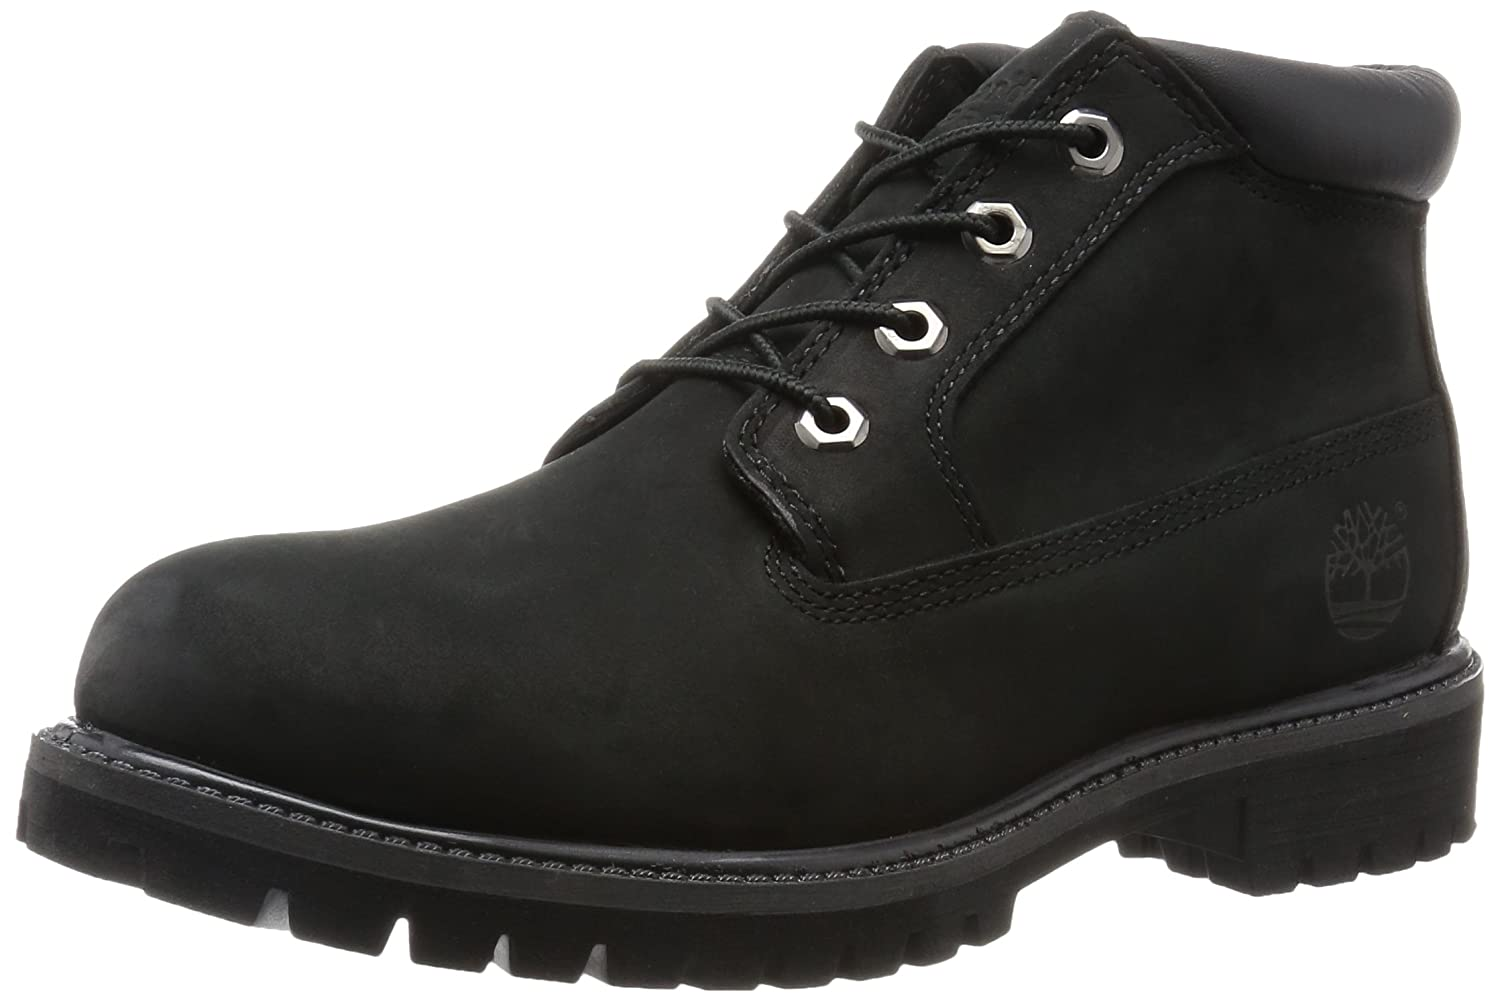 Timberland Timberland chukka boots WATERPROOF CHUKKA BOOT 23061 W wise waterproof mens